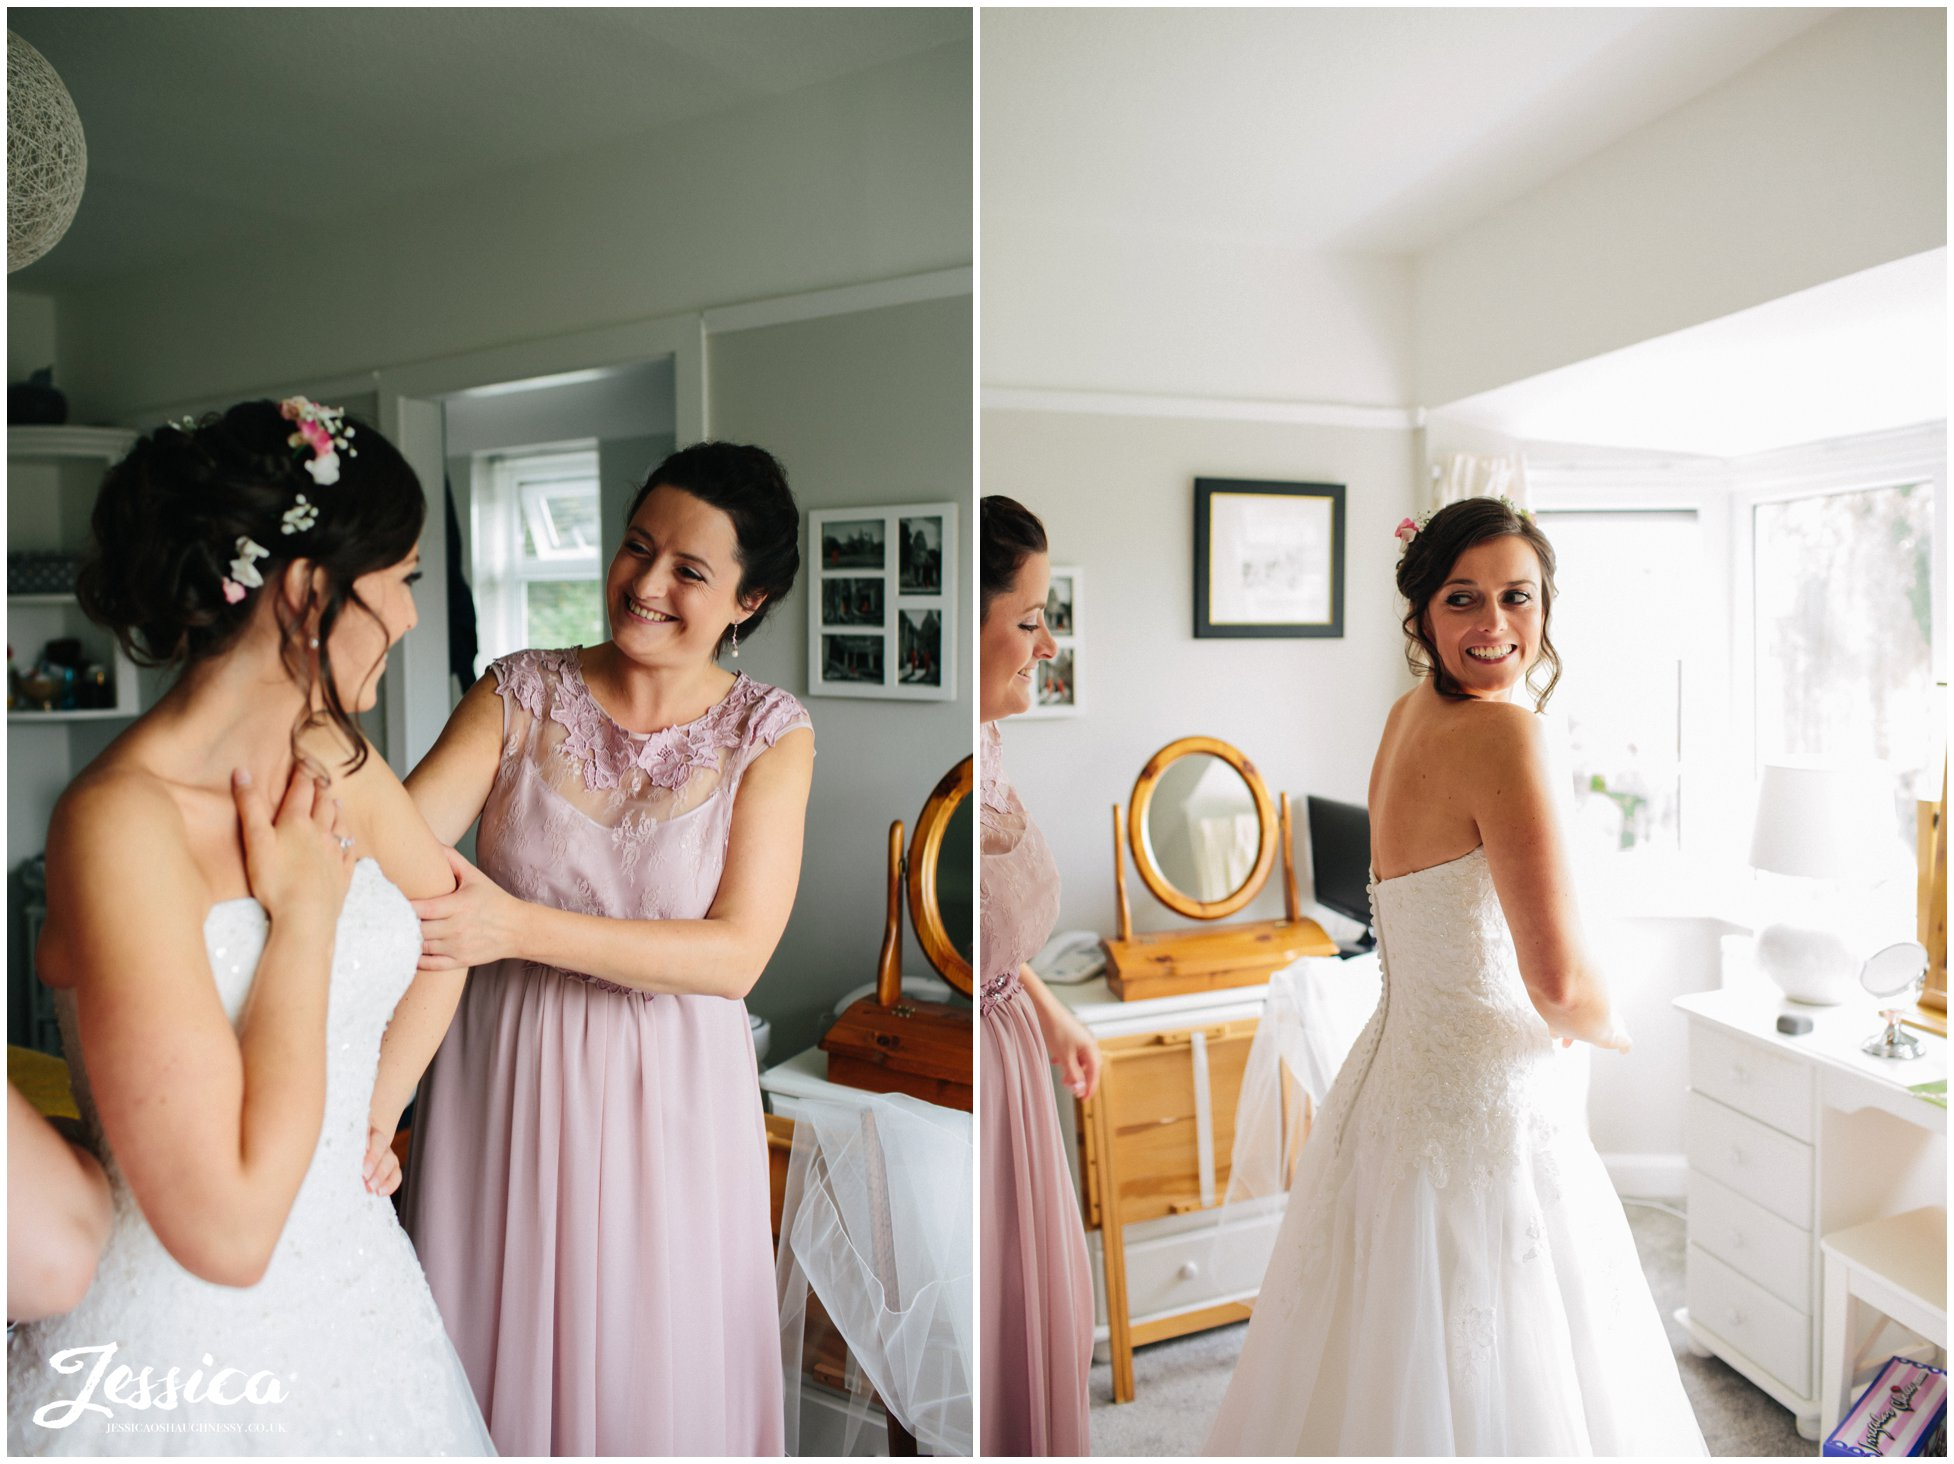 bridesmaids help bride into her wedding dress - cheshire wedding photography